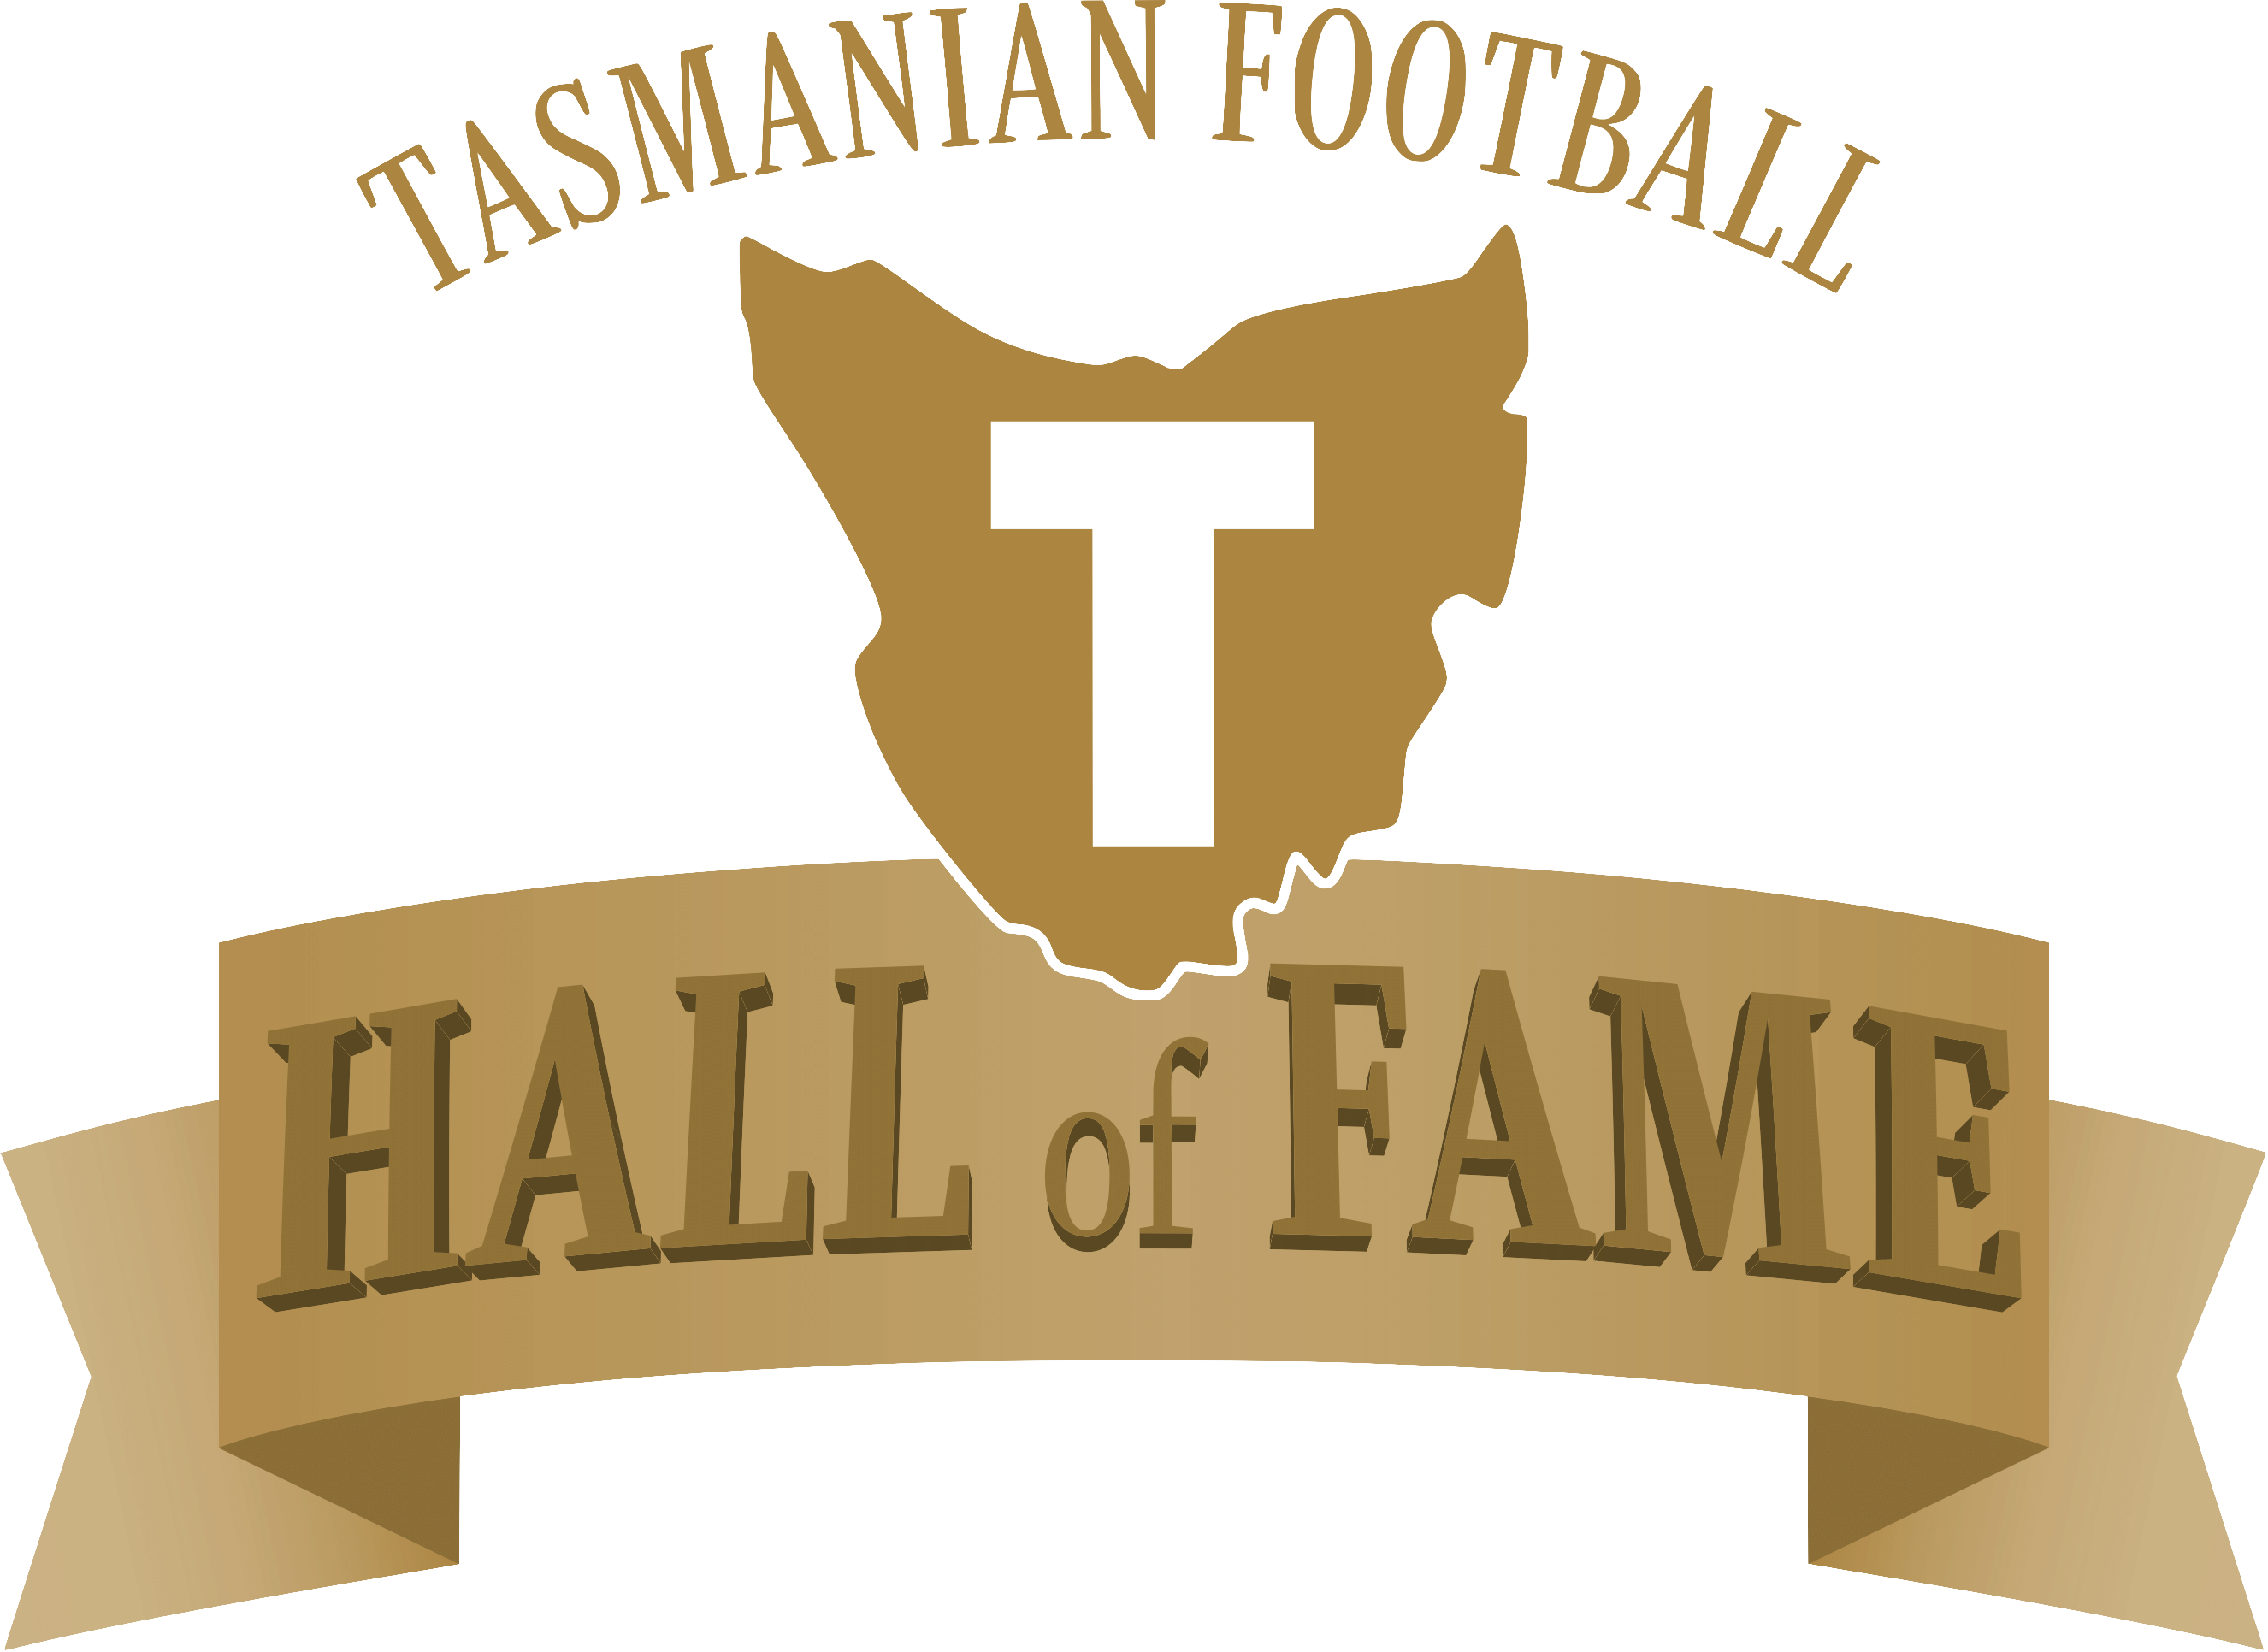 AFL Tasmania Hall of Fame